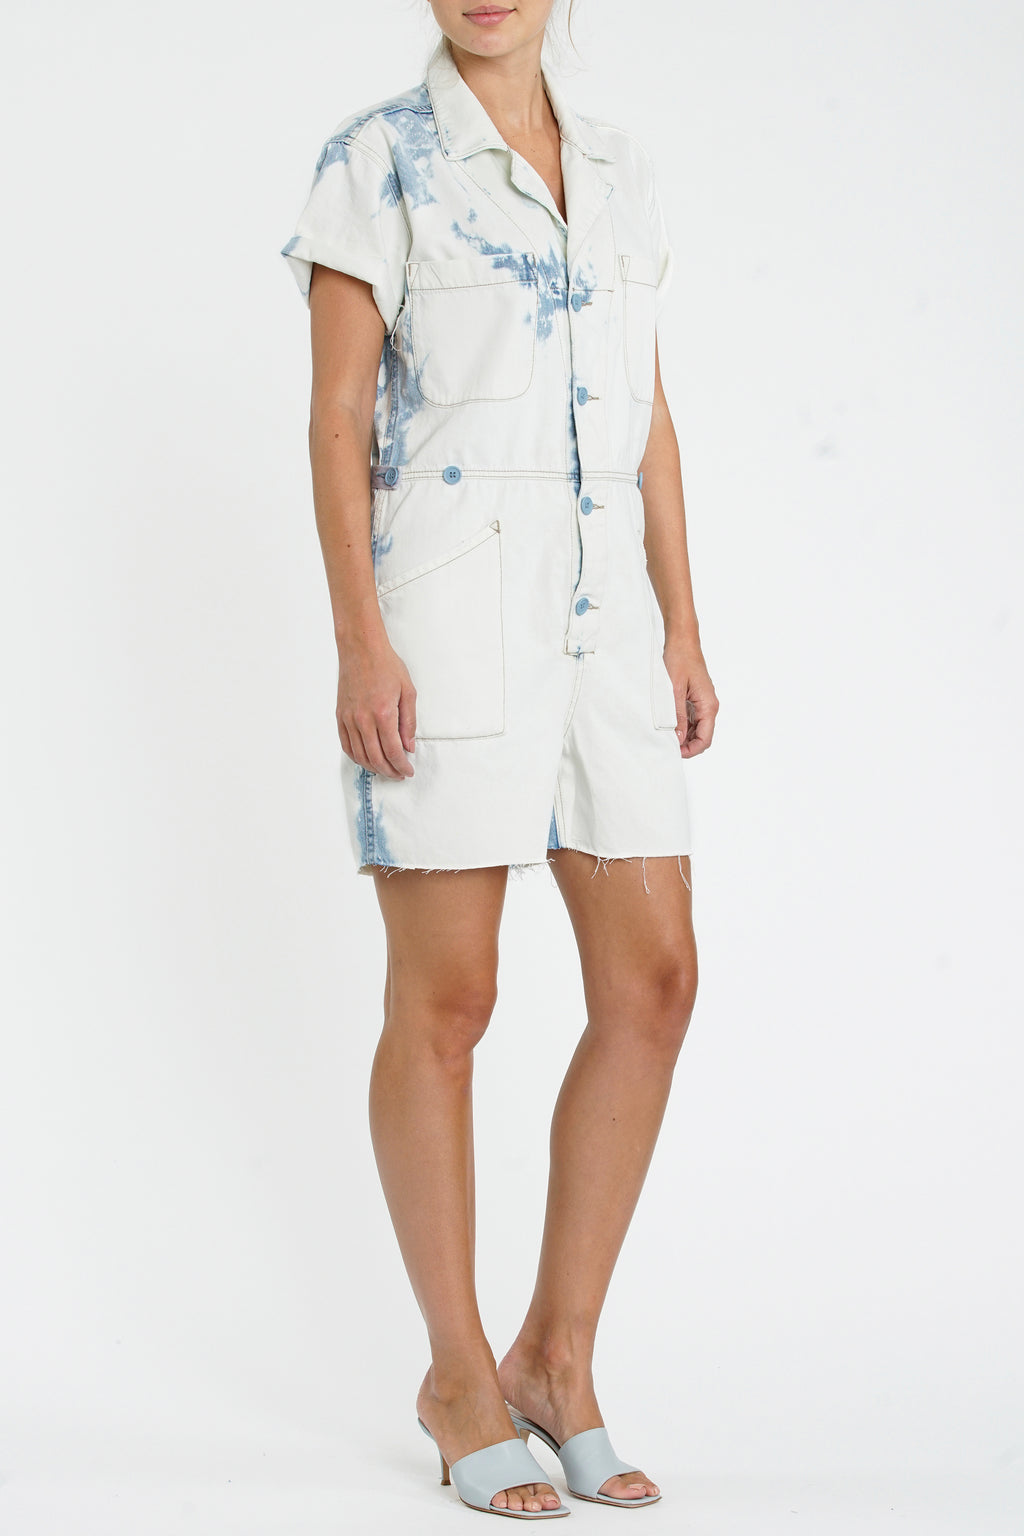 Parker Field Suit Short - Disoriented Tie Dye